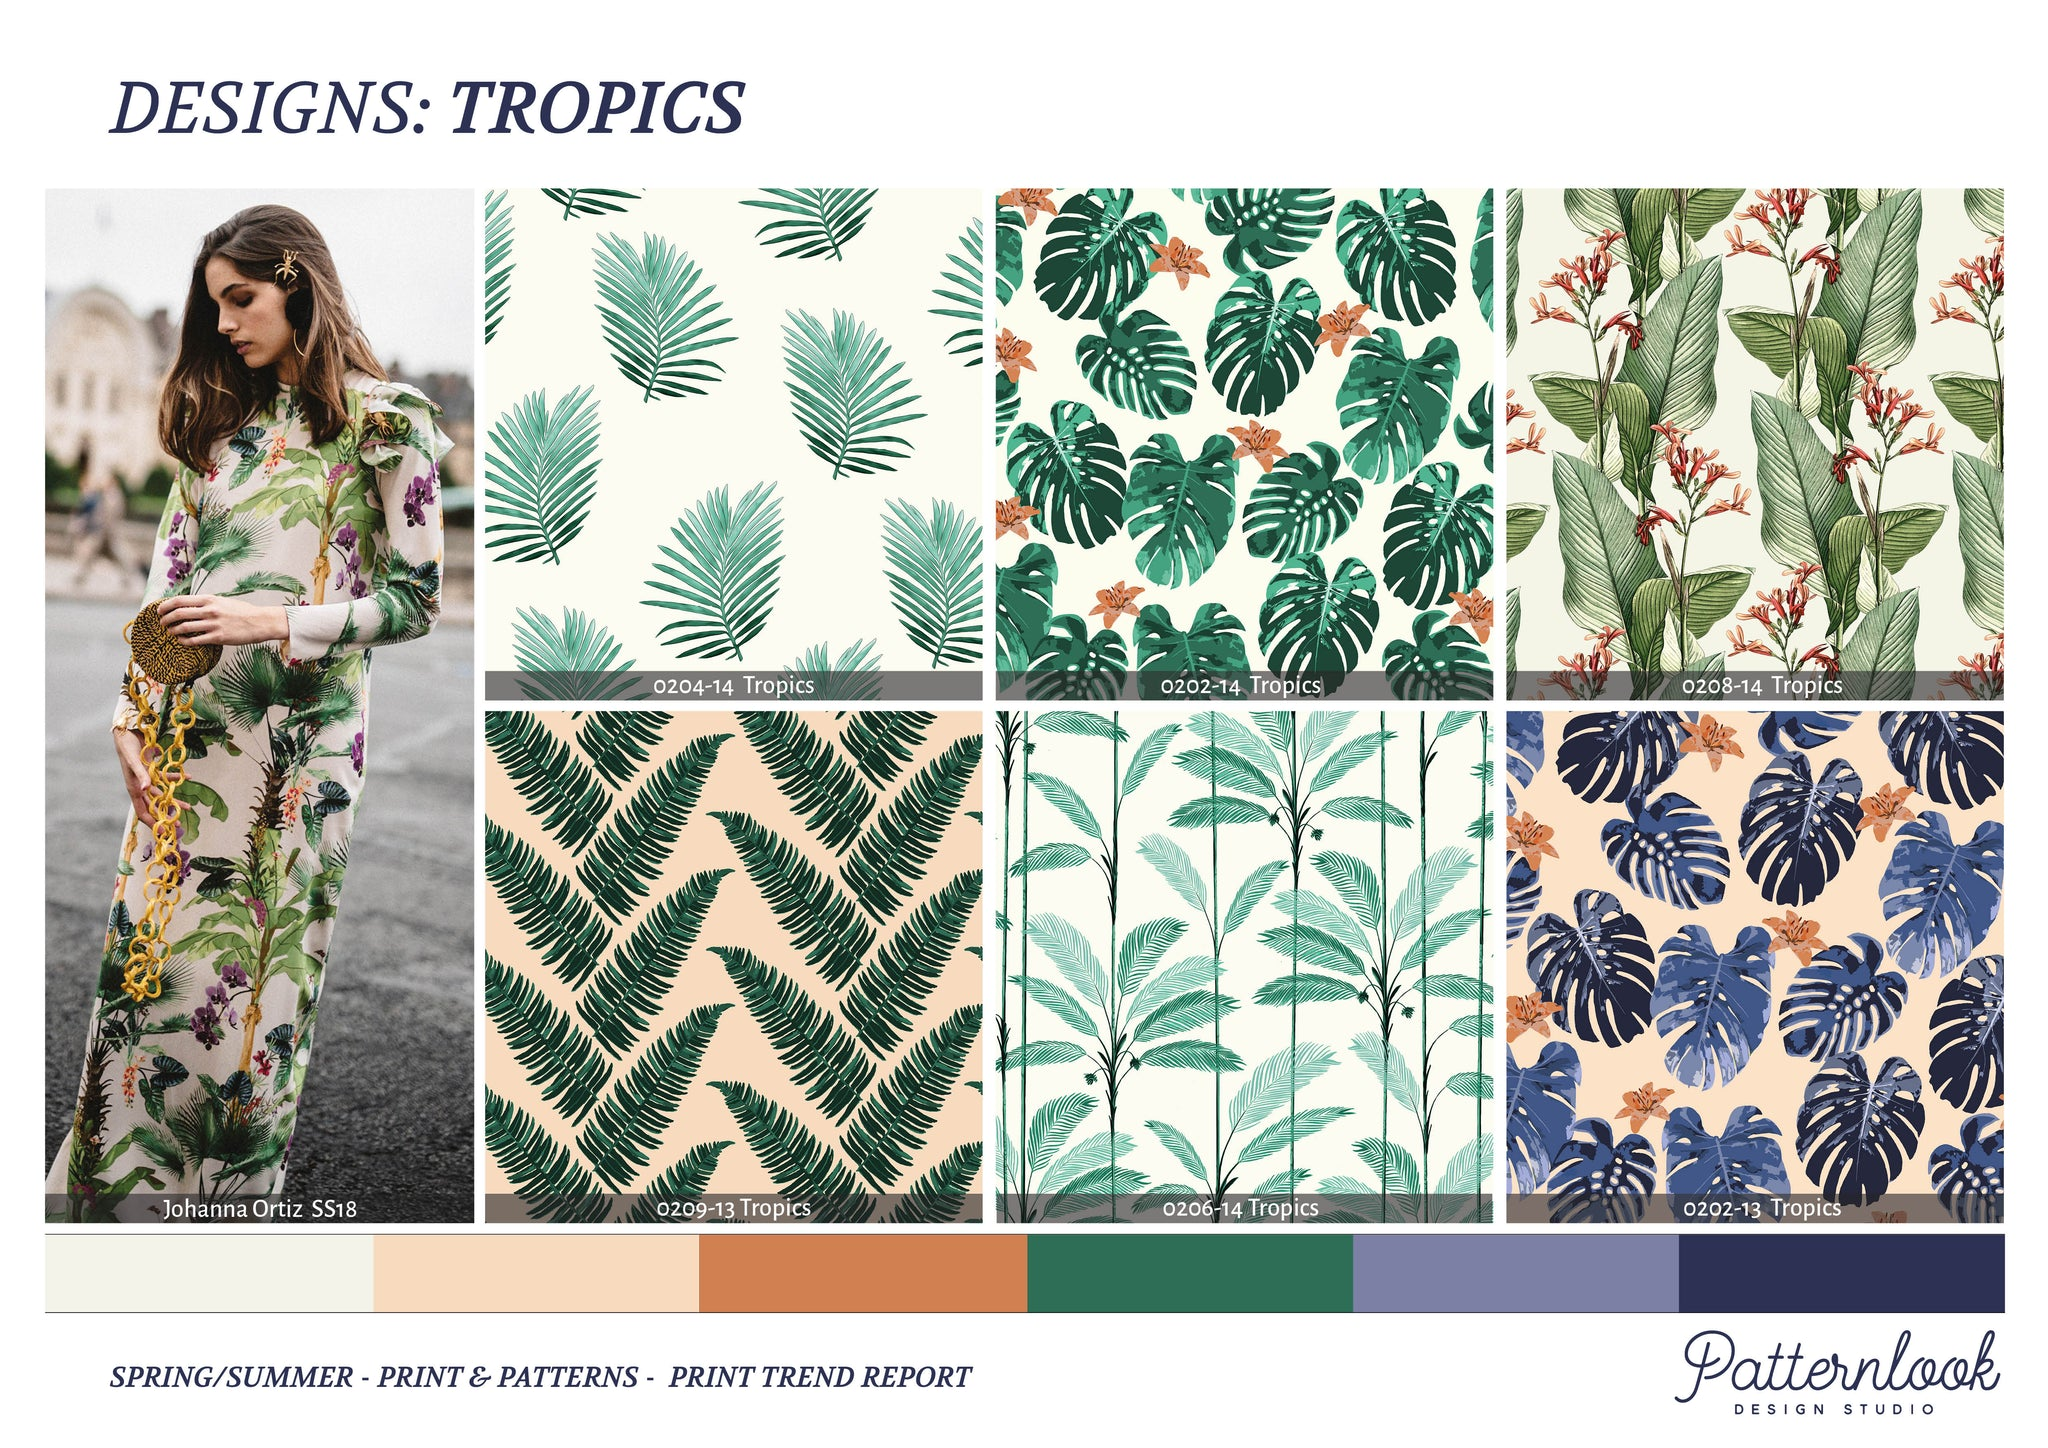 Tropical Print & Patterns SS19 Patternlook Design Studio